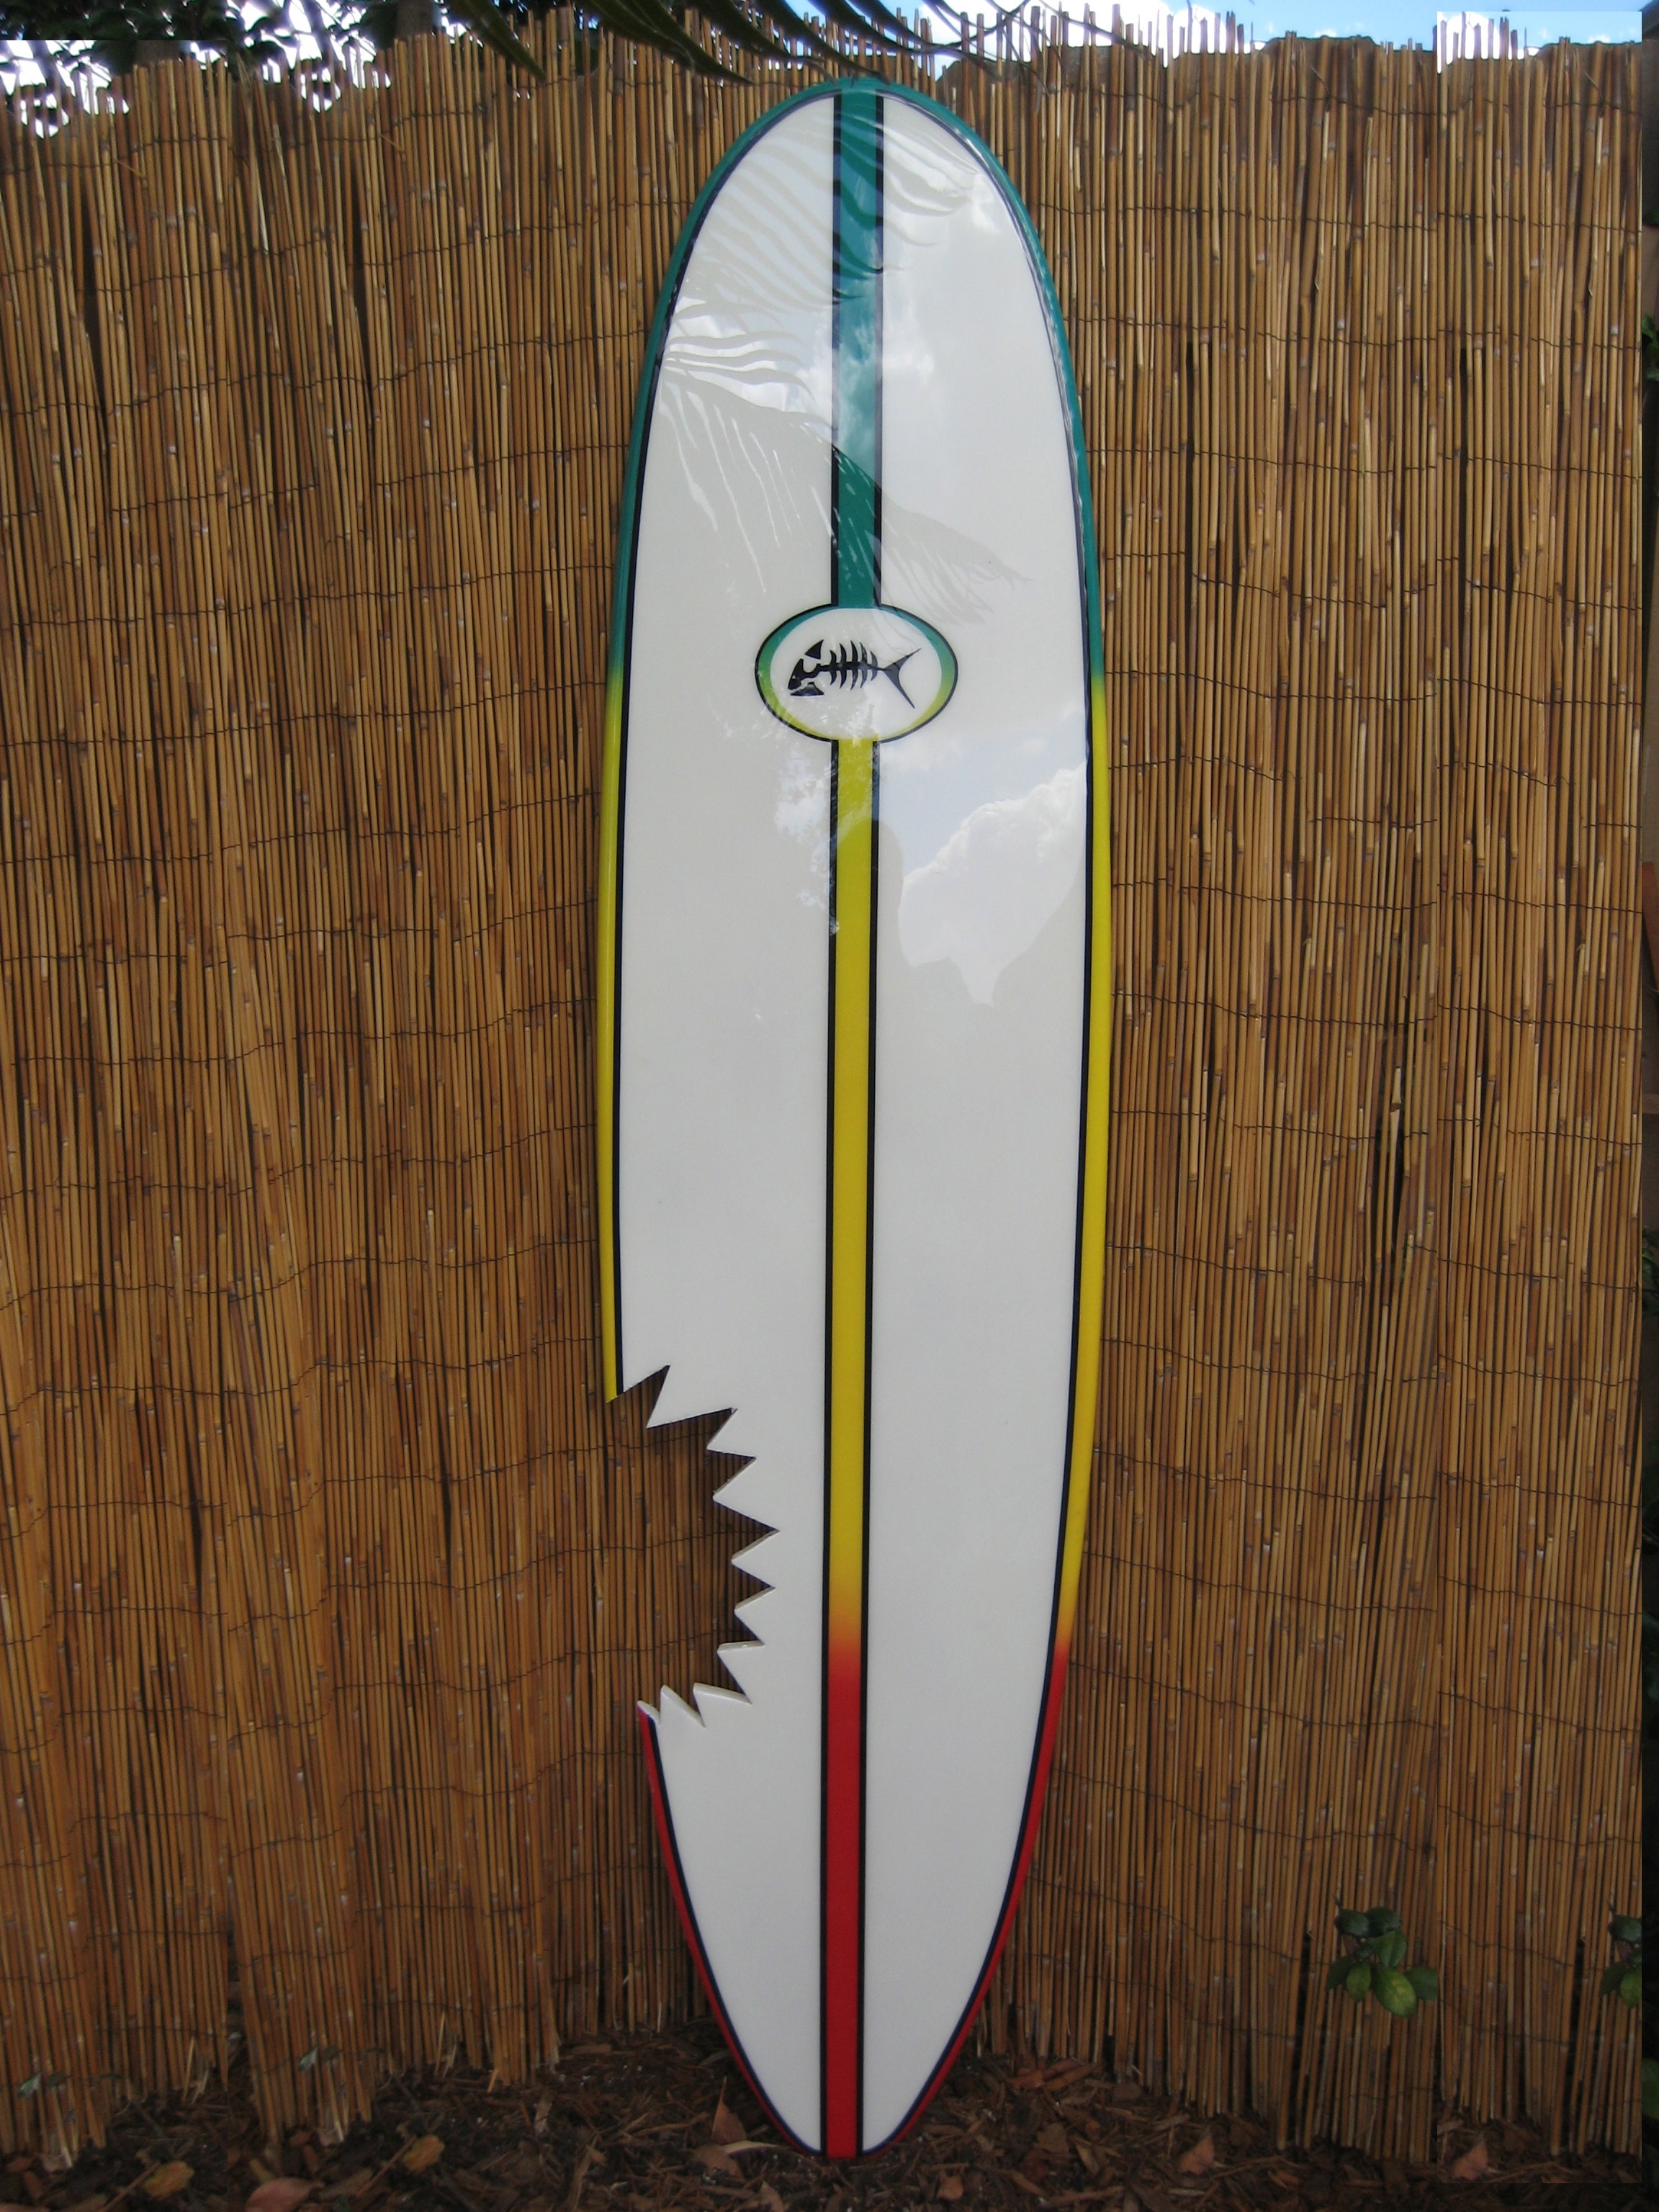 Decorative Wood Surfboard Art Wall Surf Surfboard Decor Intended For Most Up To Date Surfboard Wall Art (View 4 of 15)